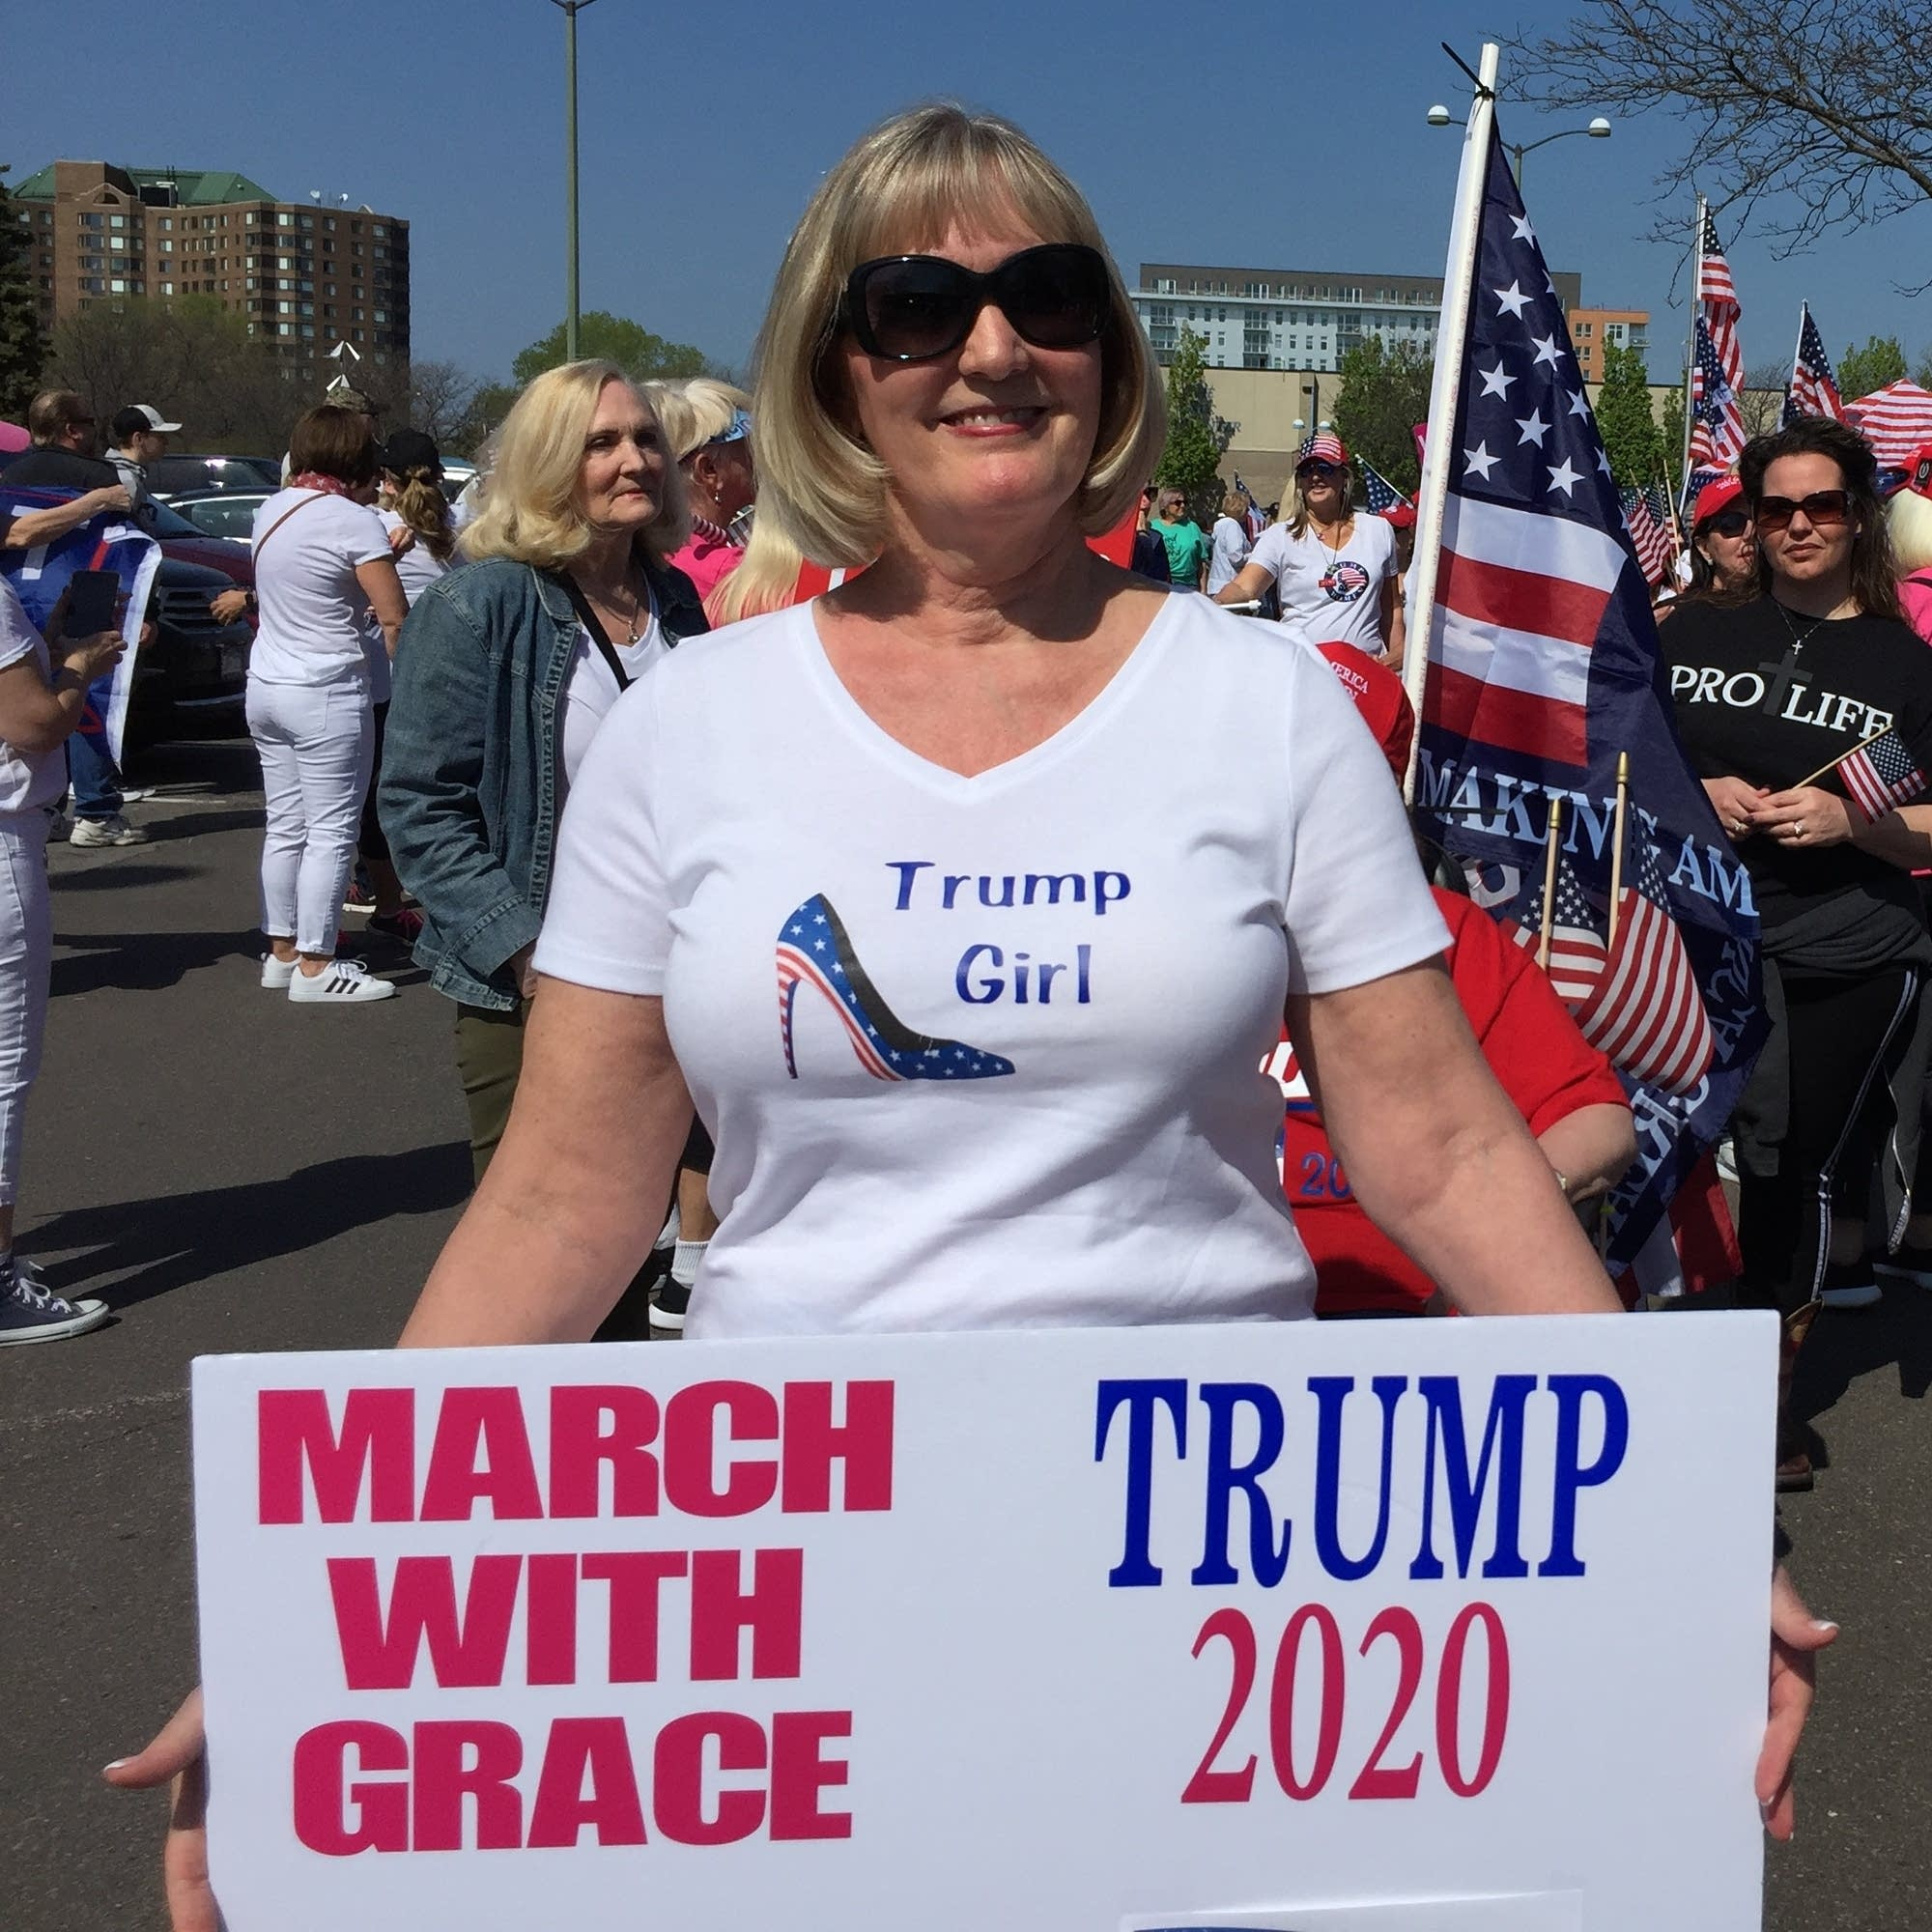 Kathleen Laverdiere, 62, of Shoreview at a march in support of Trump